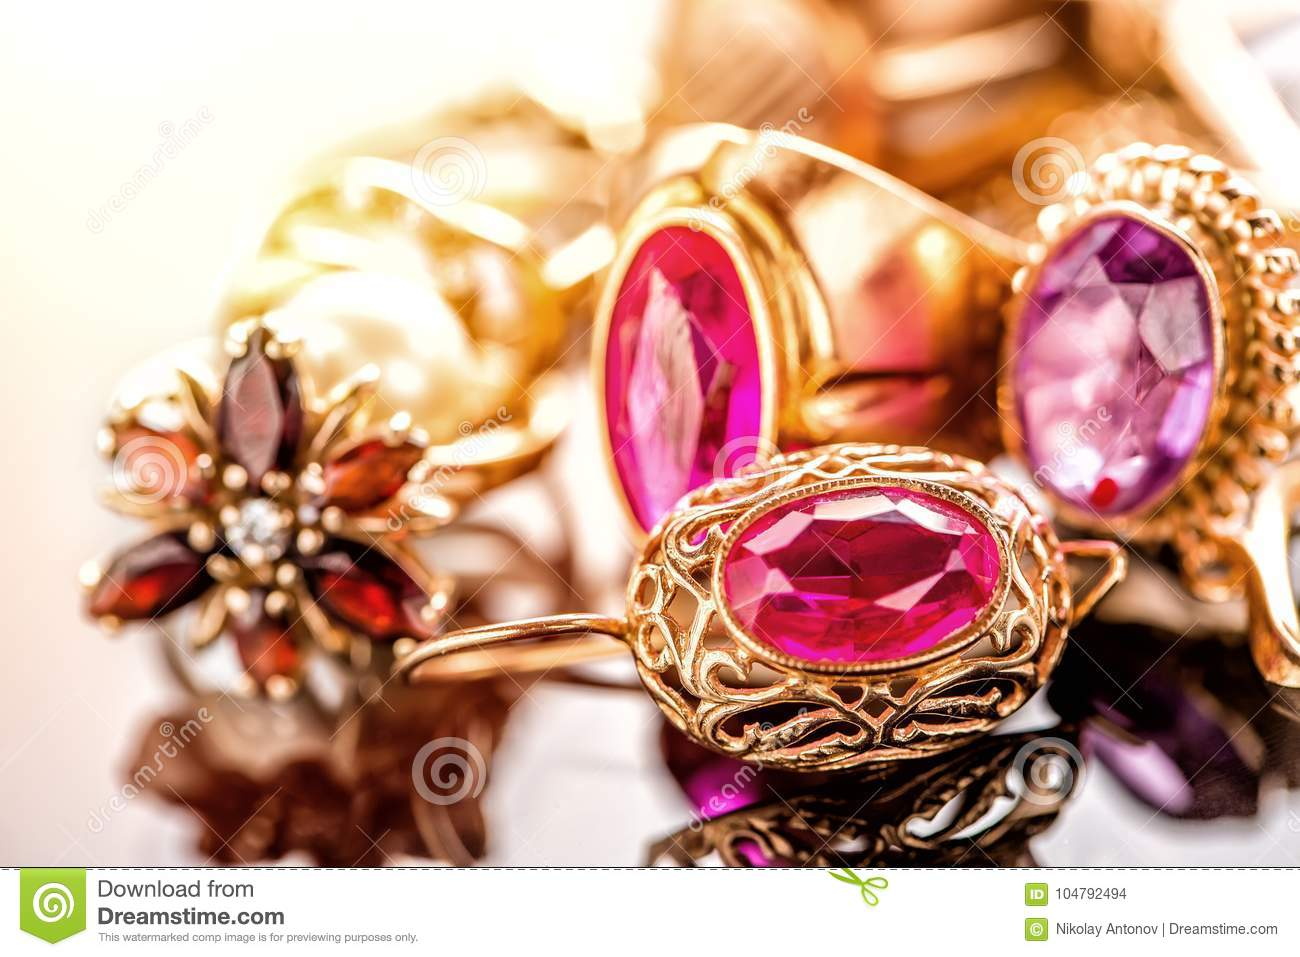 Elegant luxury composition of gold jewelry with ring with red amethyst and ruby gemstone and diamonds on light background close-up